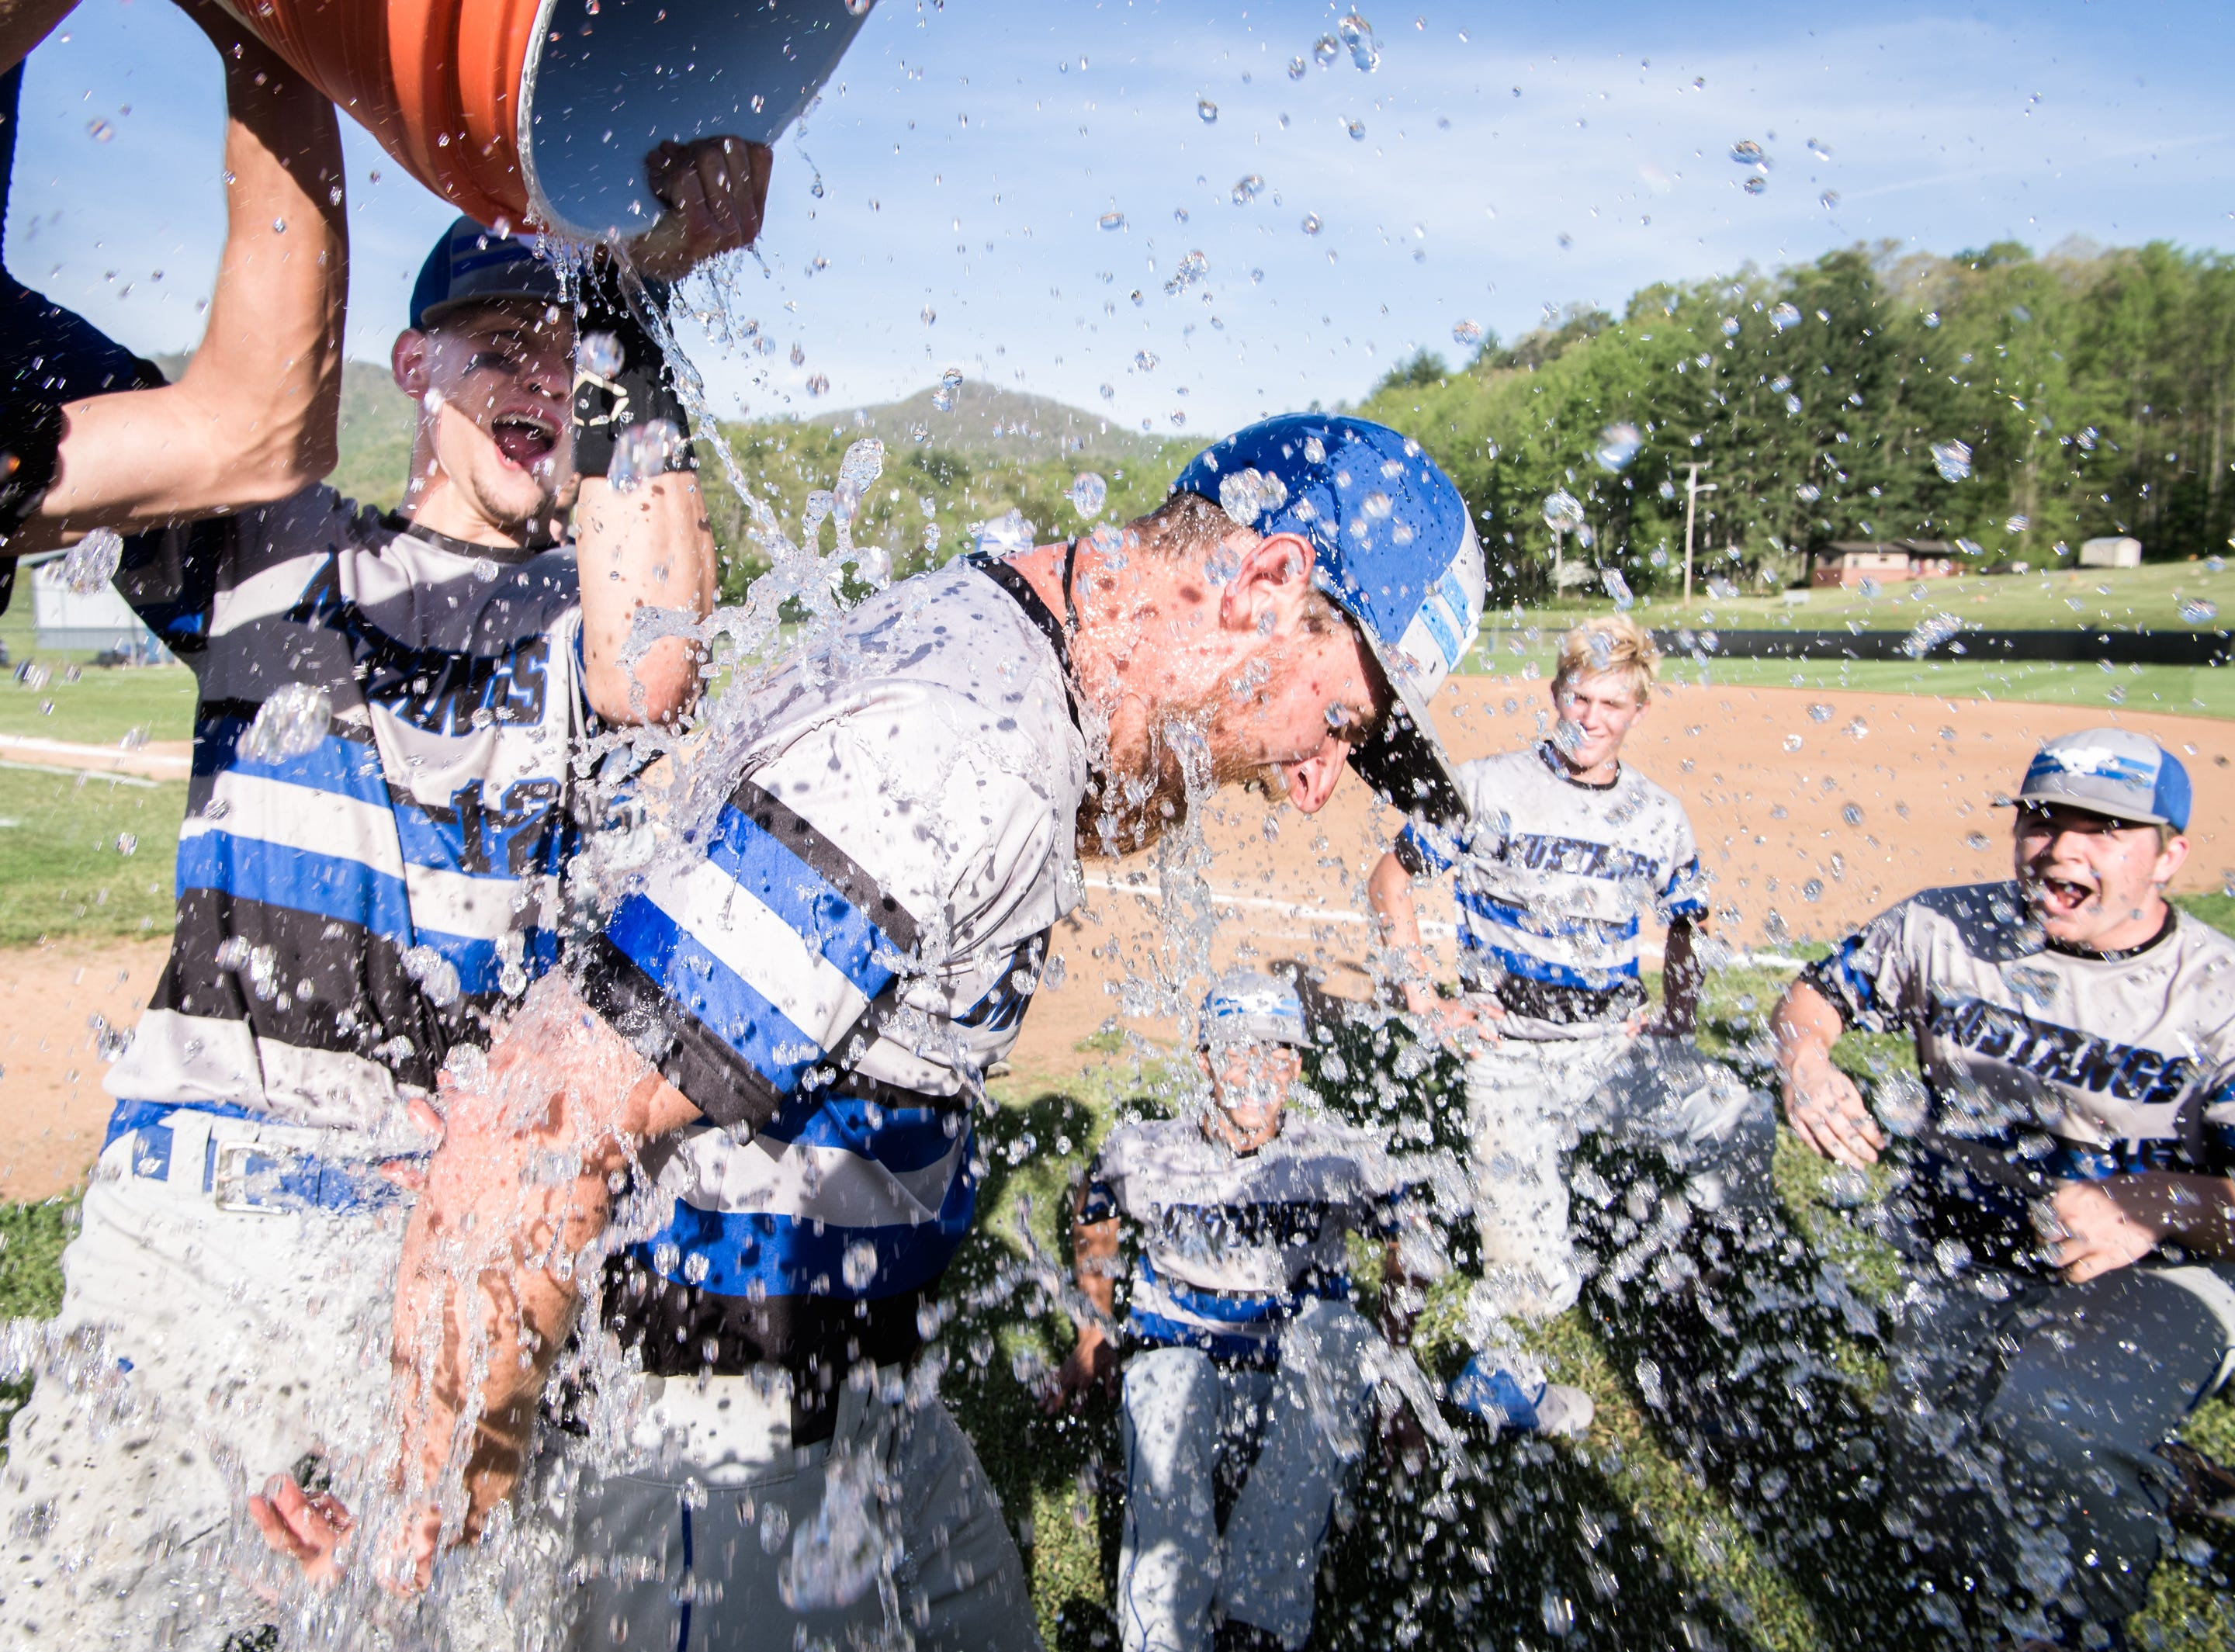 Smoky Mountain baseball coach Jeremy Ellenburg is doused with water after their 7-2 win over Franklin, Thursday, May 3, 2018.